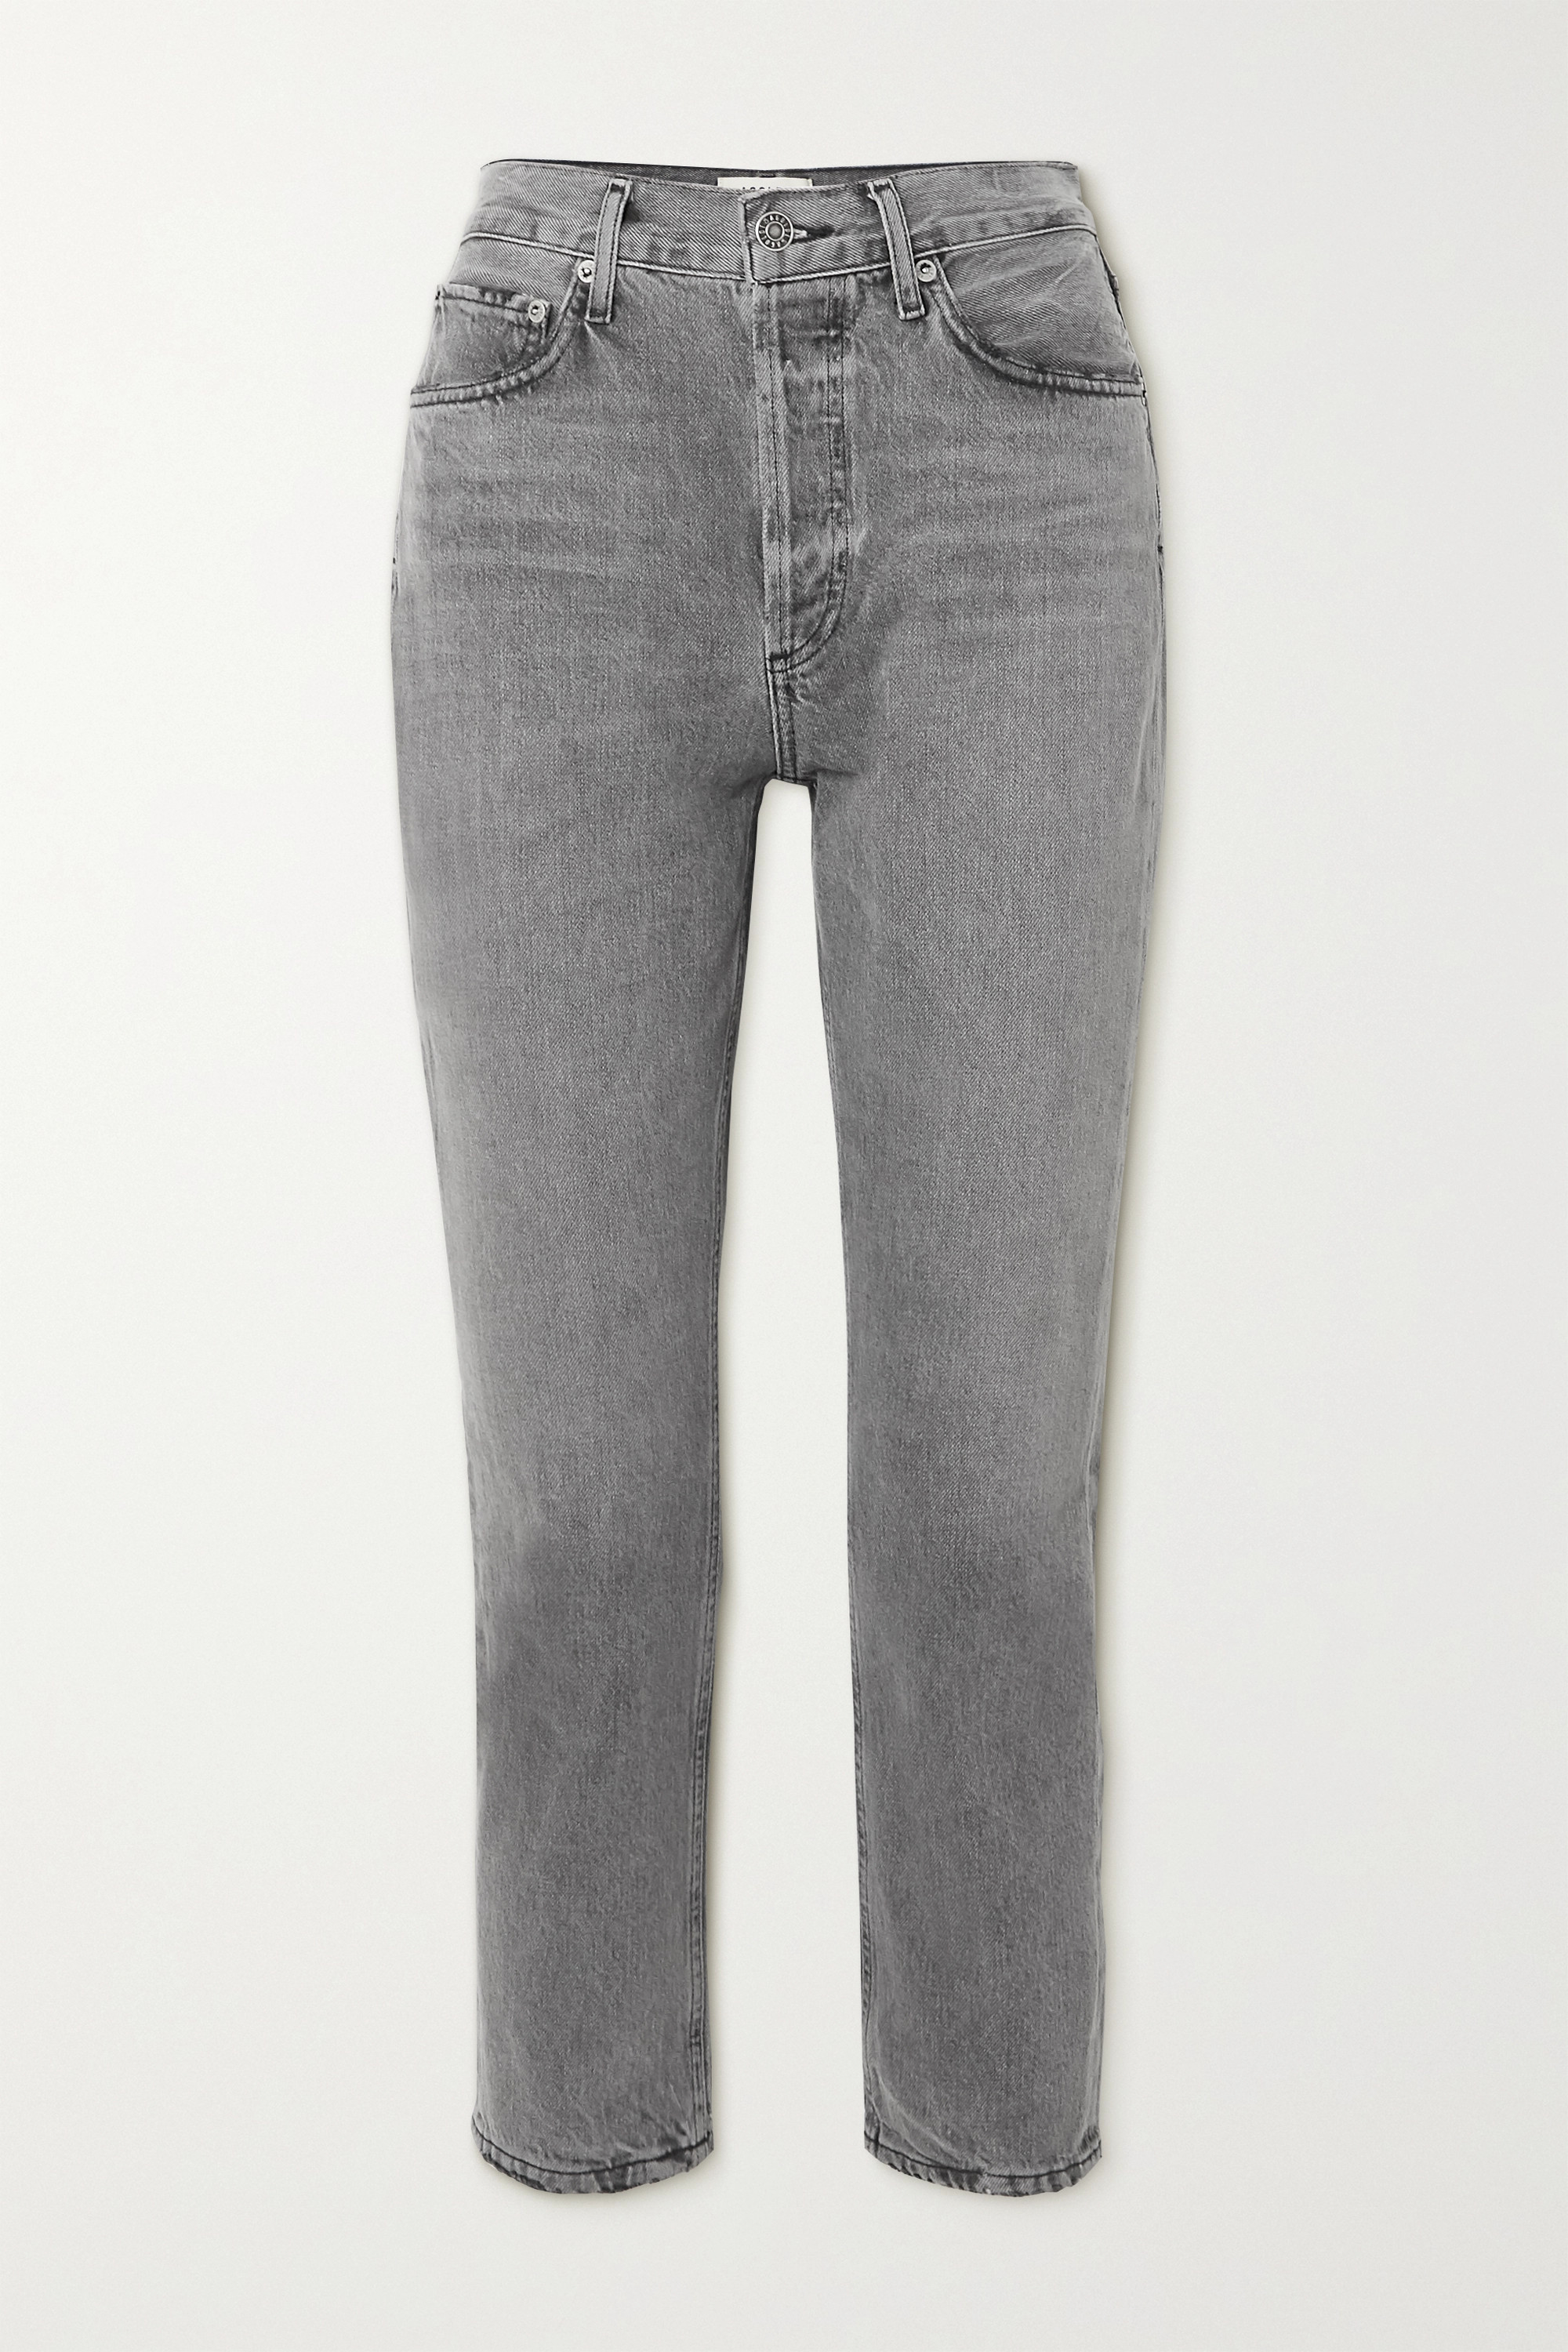 Agolde Riley High-rise Straight-leg Jeans In Gray